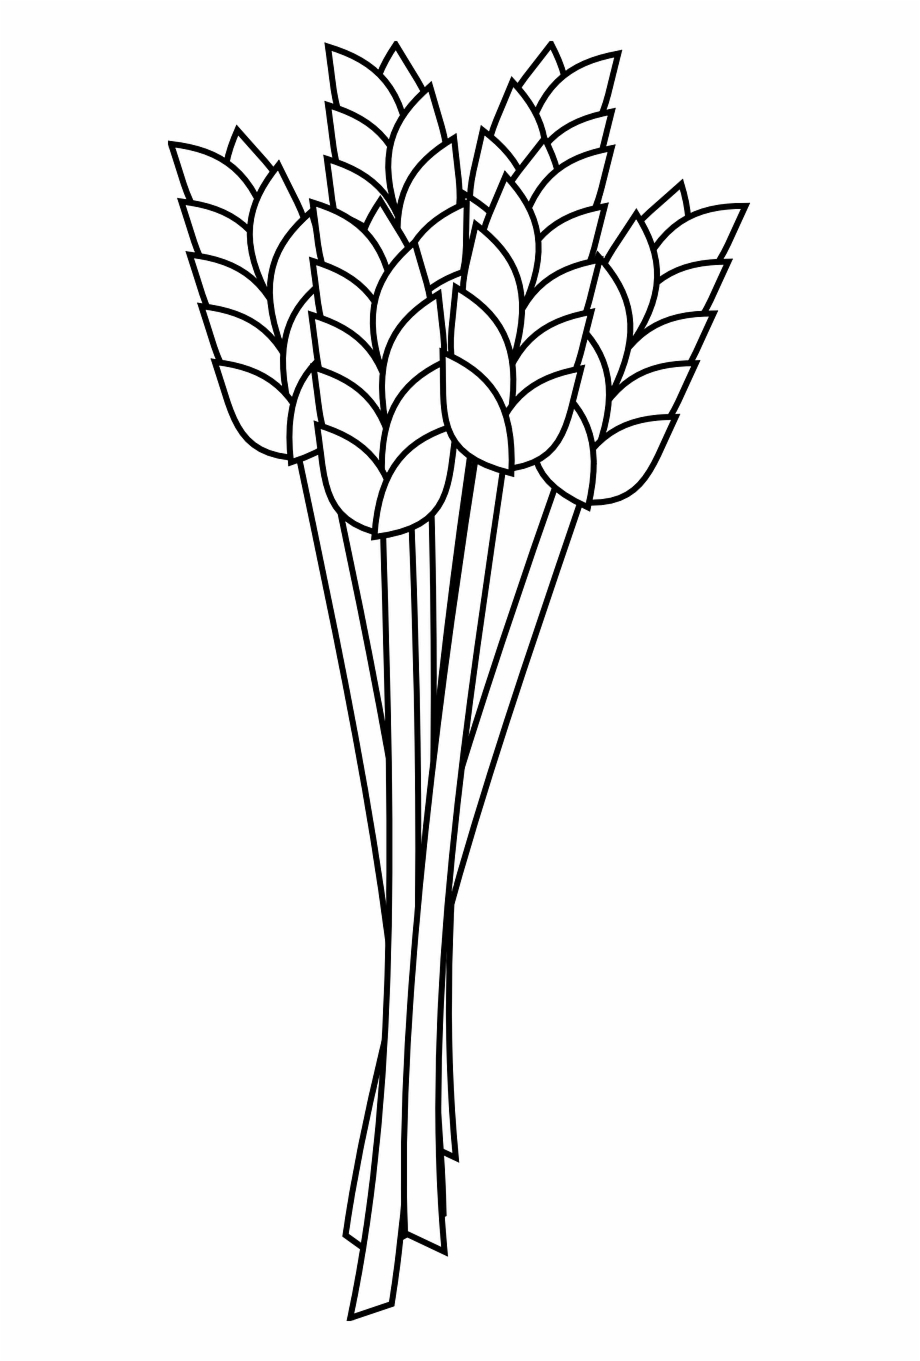 Free Wheat Images Black And White, Download Free Clip Art.